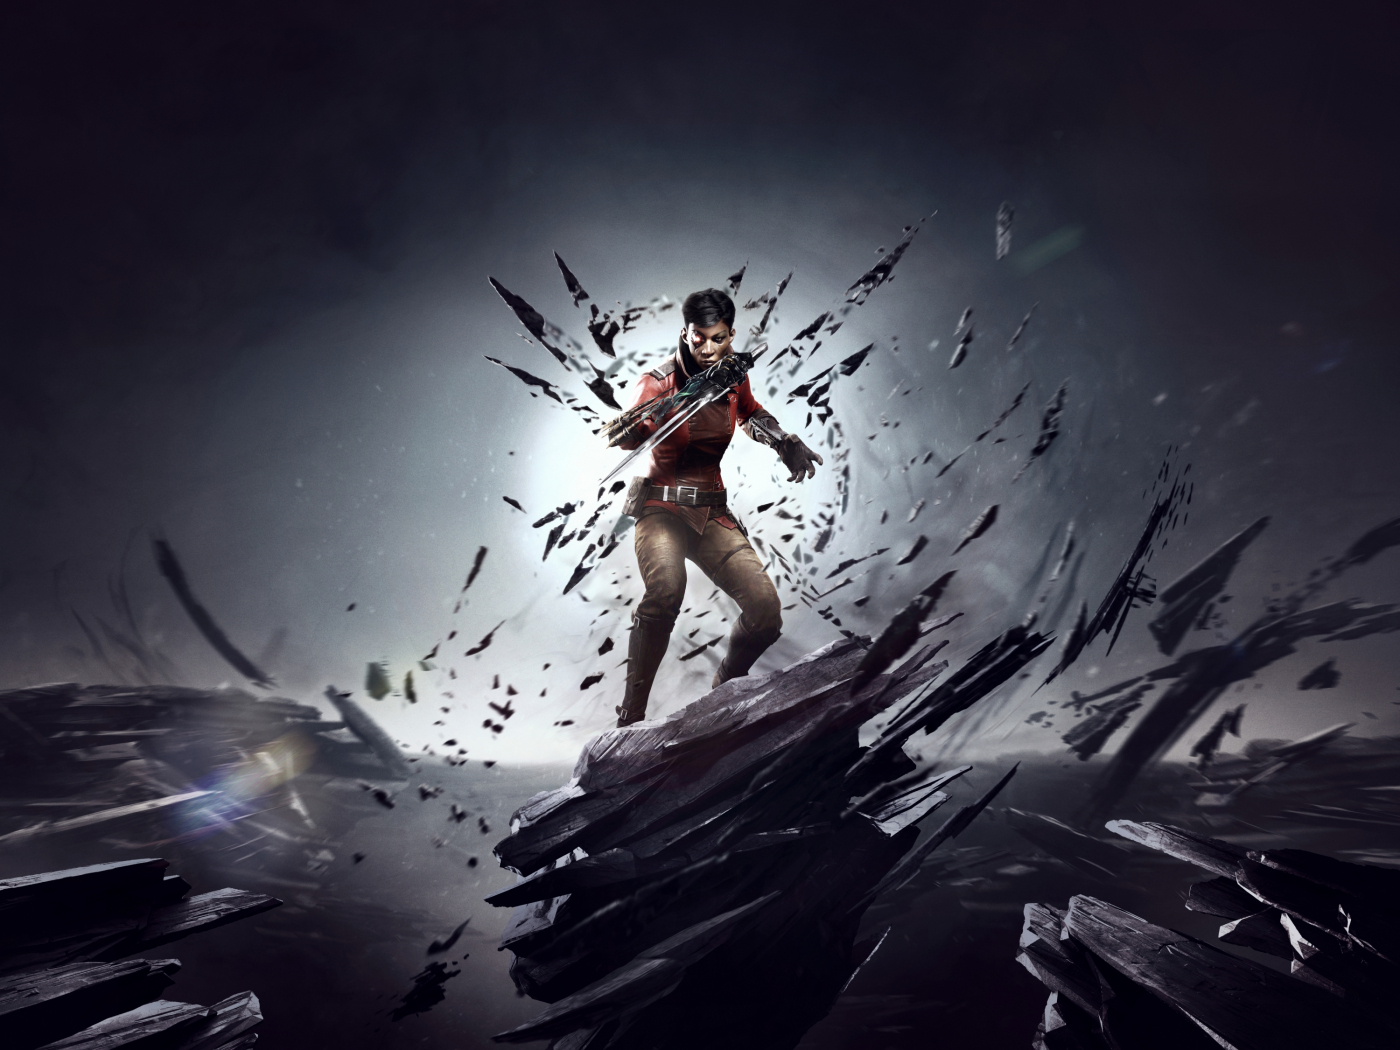 1400x1050 wallpaper Dishonored: Death Of The Outsider, 2017 game, video game